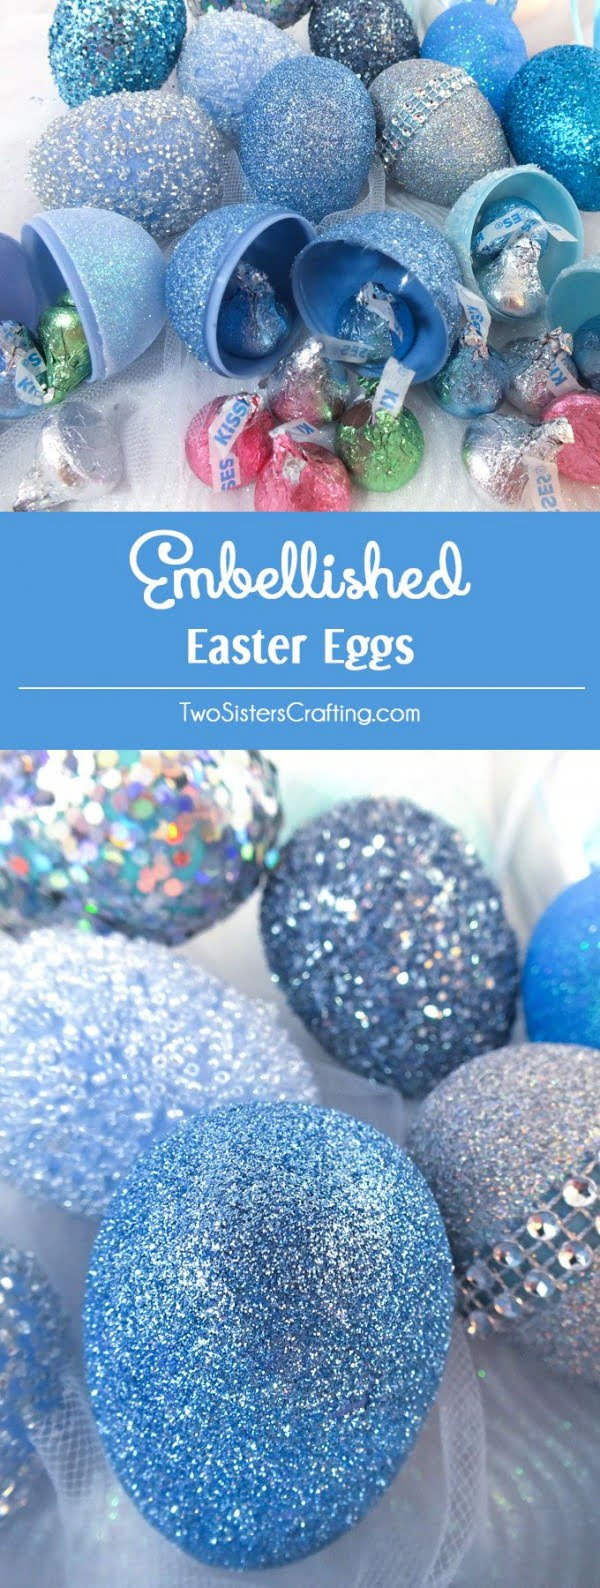 Check out this cute  decor idea with embellished Easter eggs. Love it!